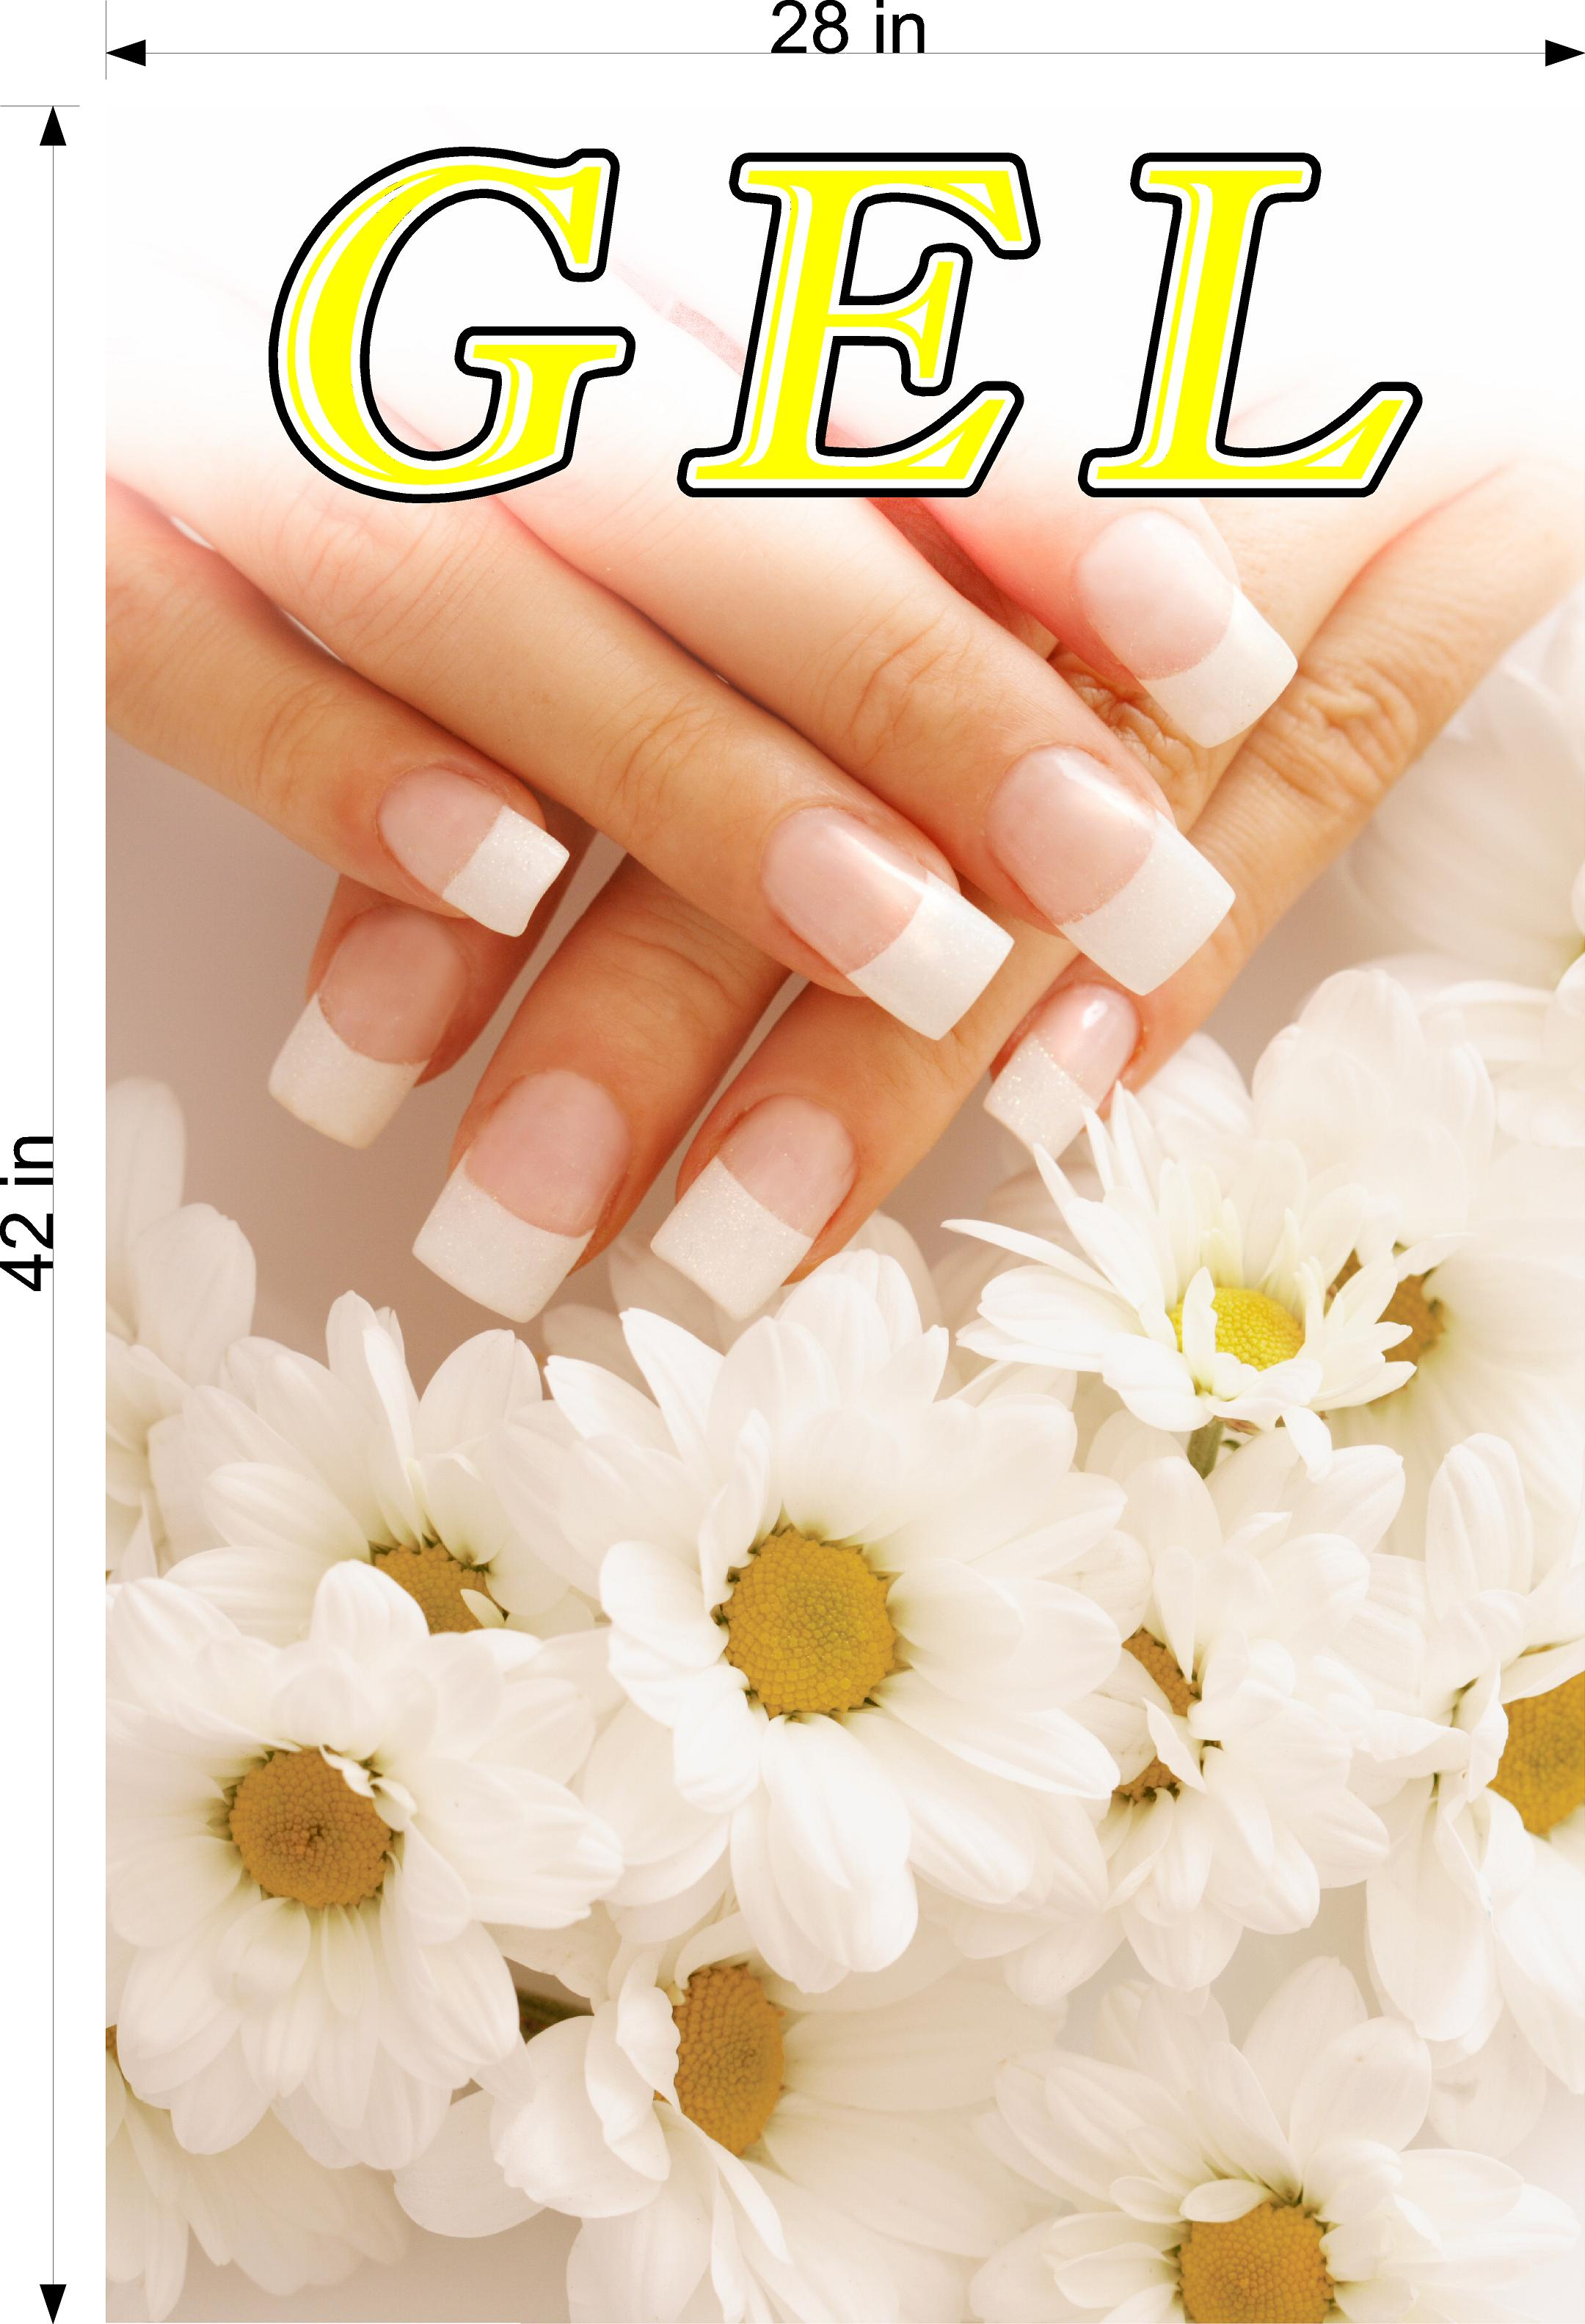 Gel 06 Photo-Realistic Paper Poster Premium Matte Interior Inside Sign Nail Salon Wall Window Non-Laminated Vertical